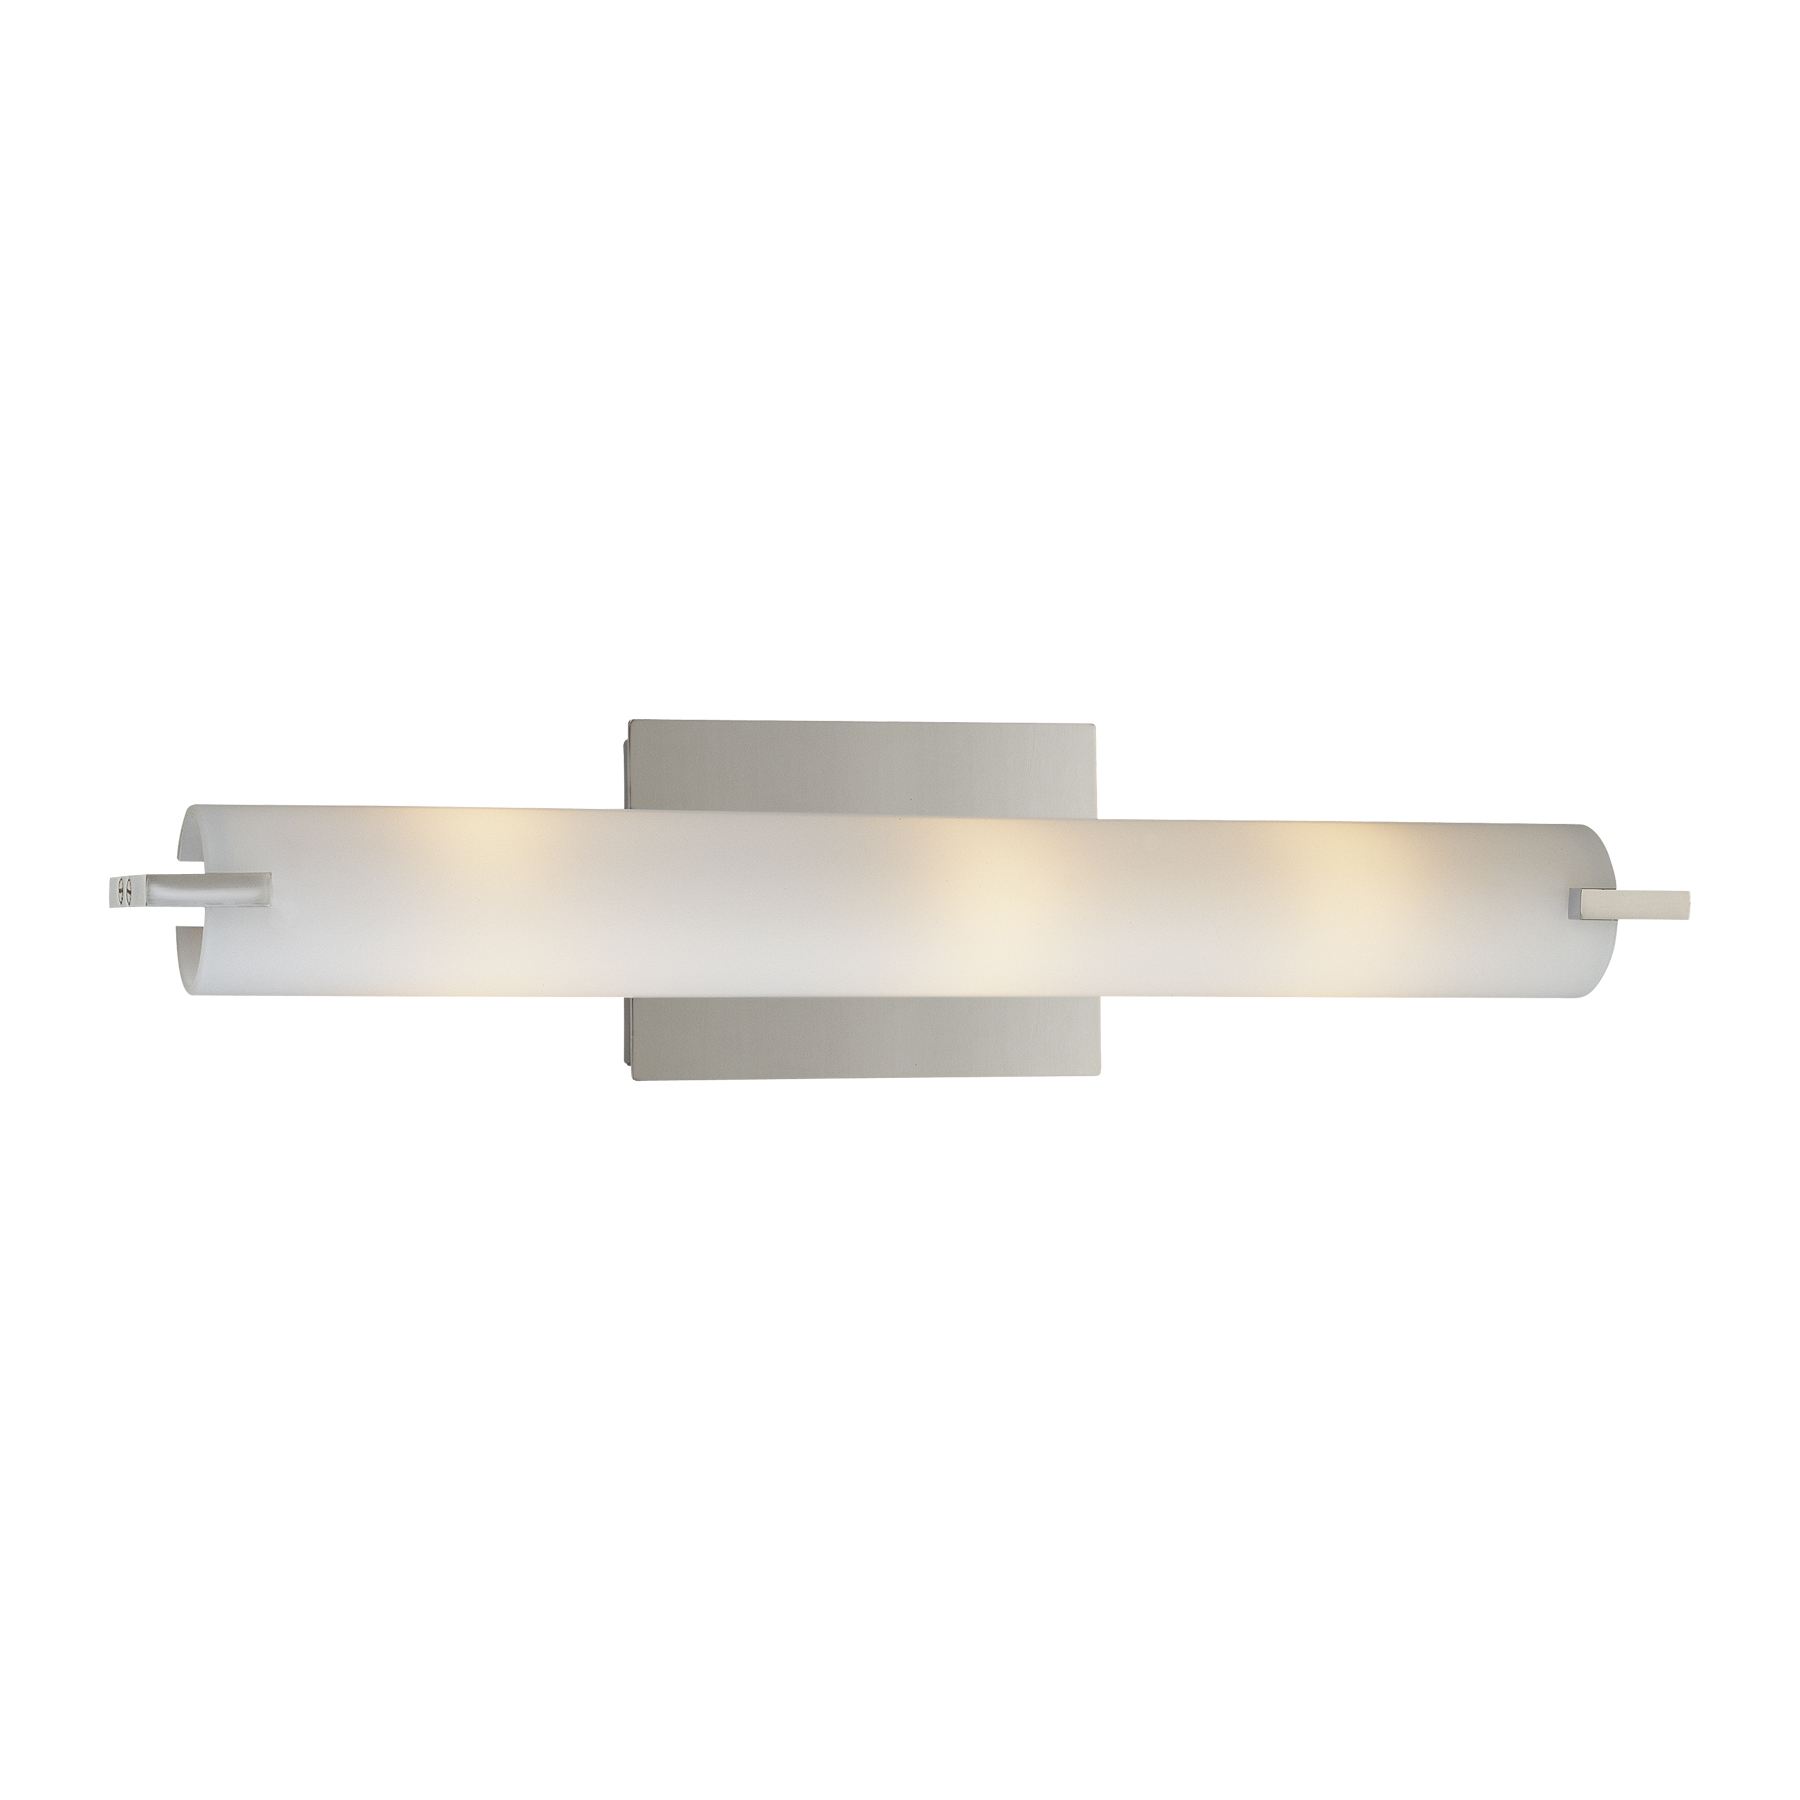 Tube Bathroom Vanity Light By George Kovacs P5044 077